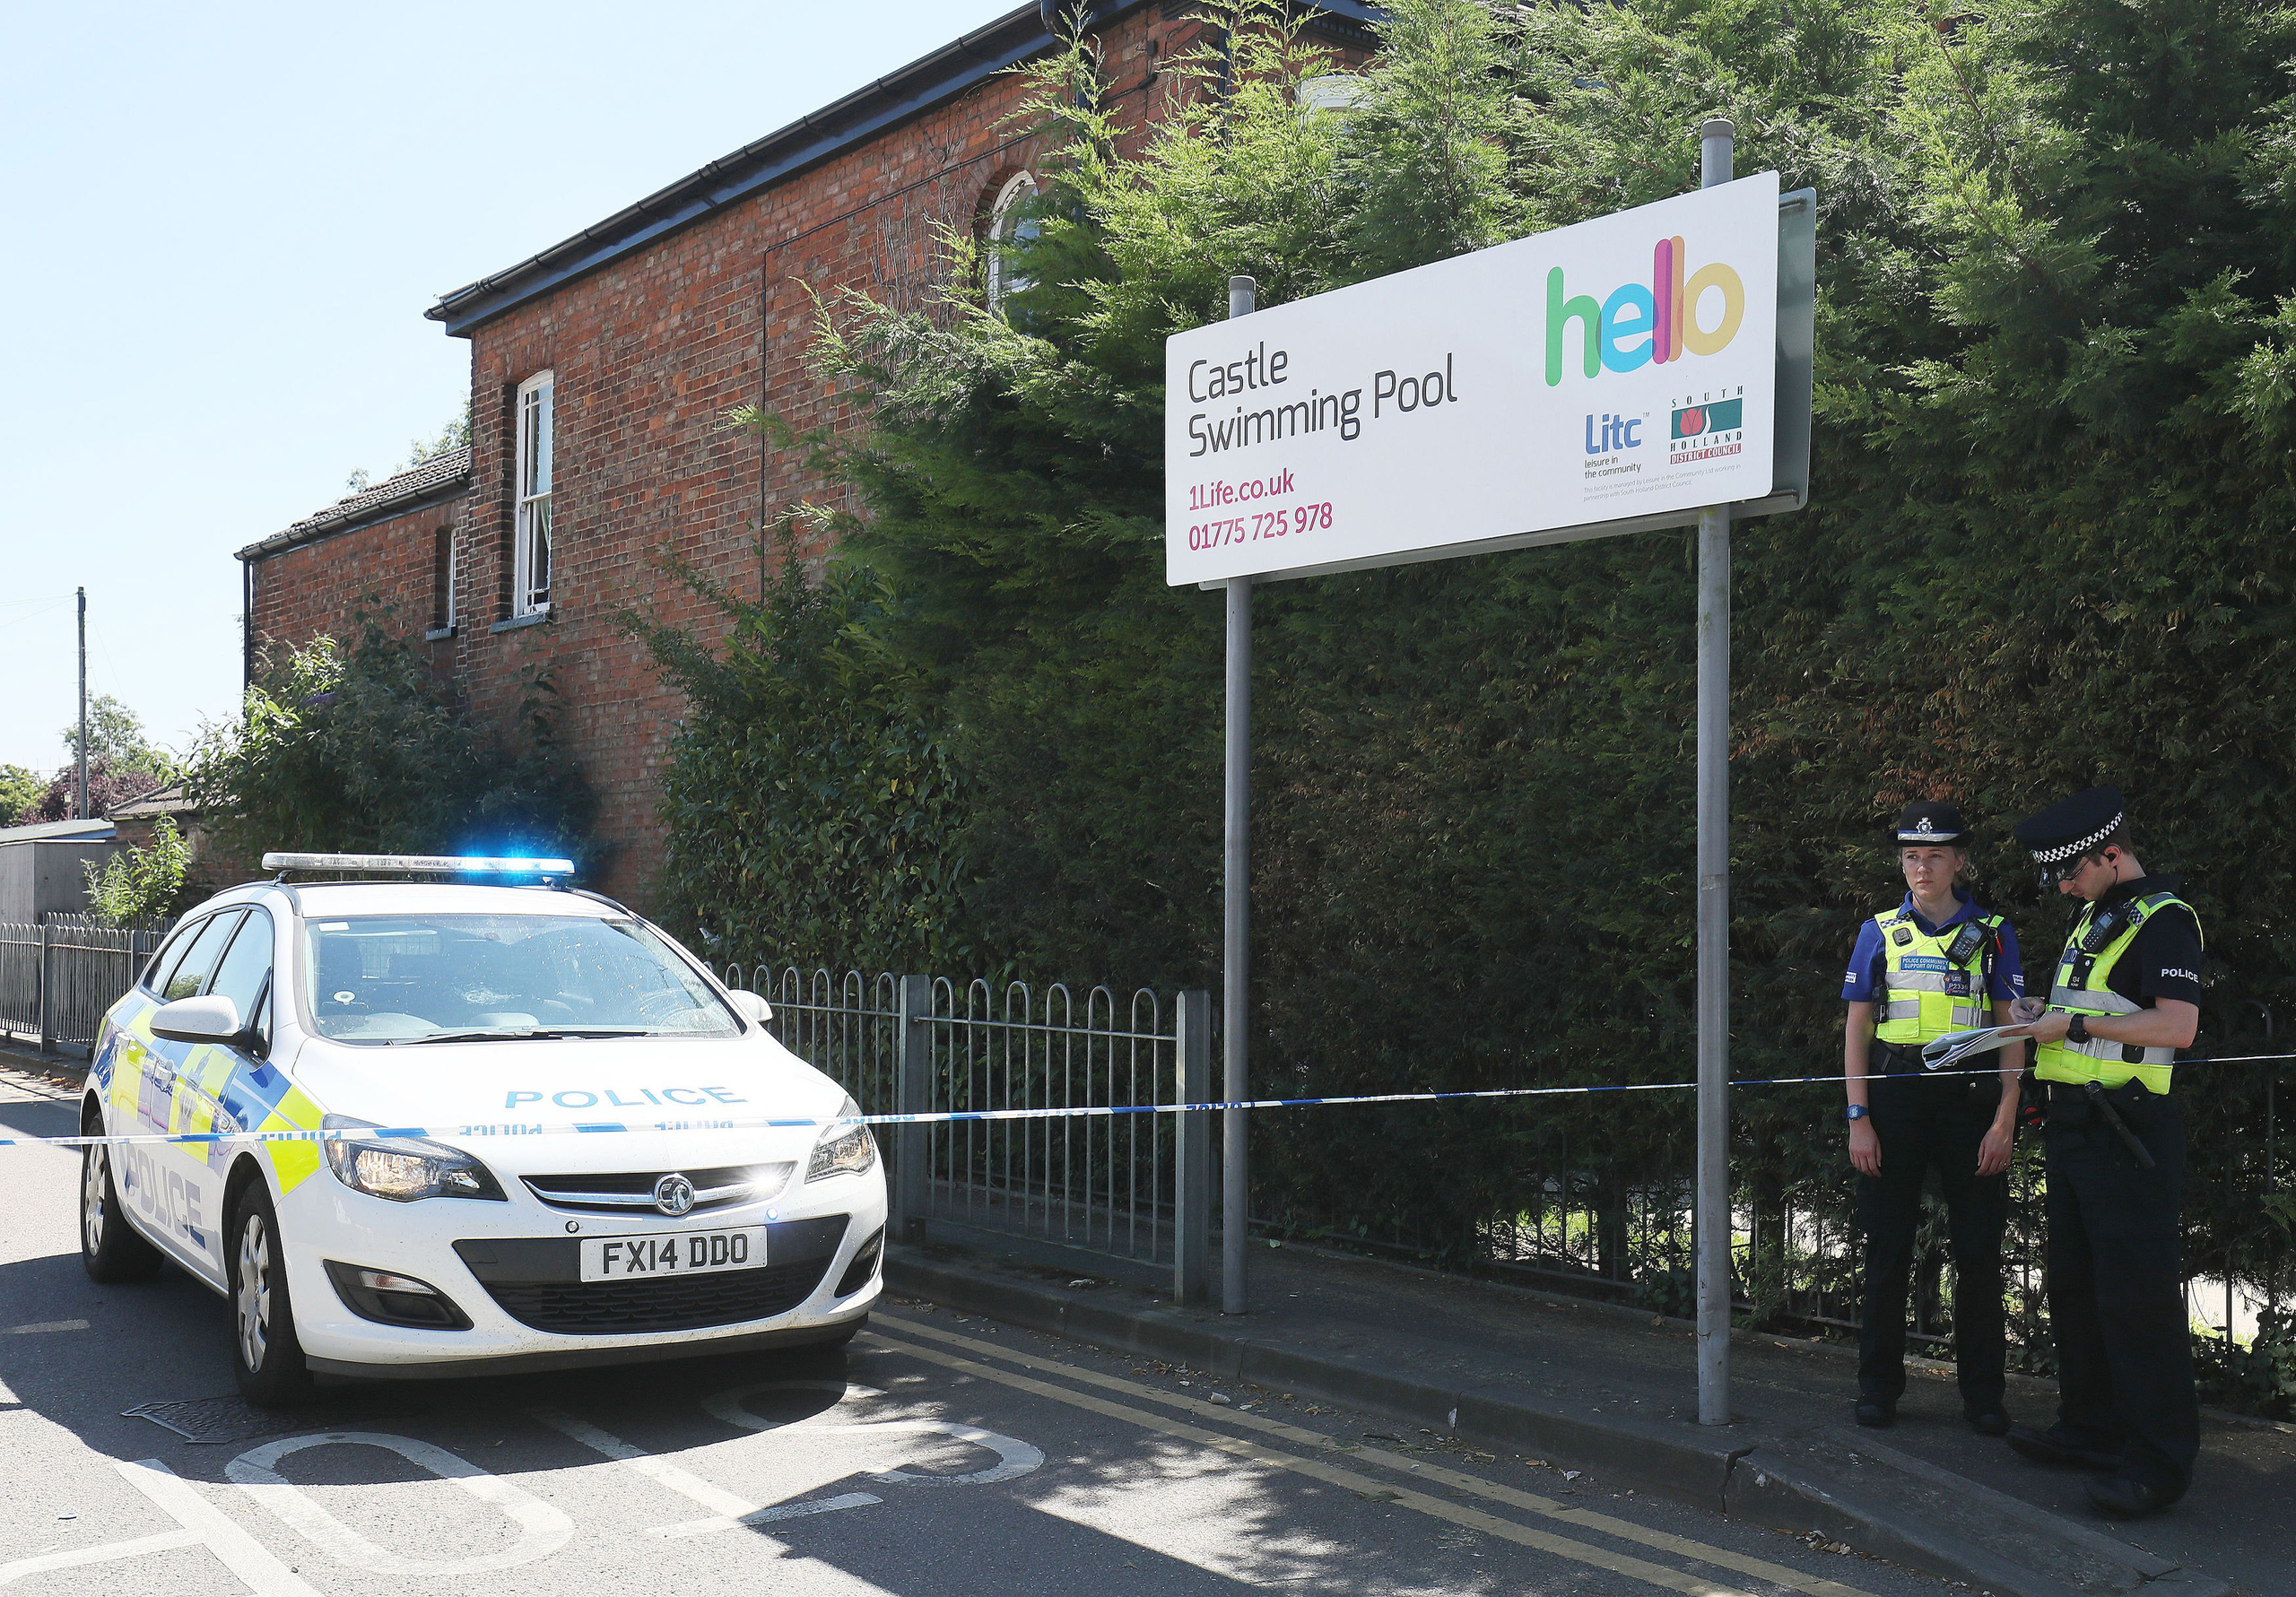 Emergency services at the scene near Castle Swimming Pool after three people including a suspected gunman have been shot dead in Spalding, Lincolnshire on July 19, 2016.